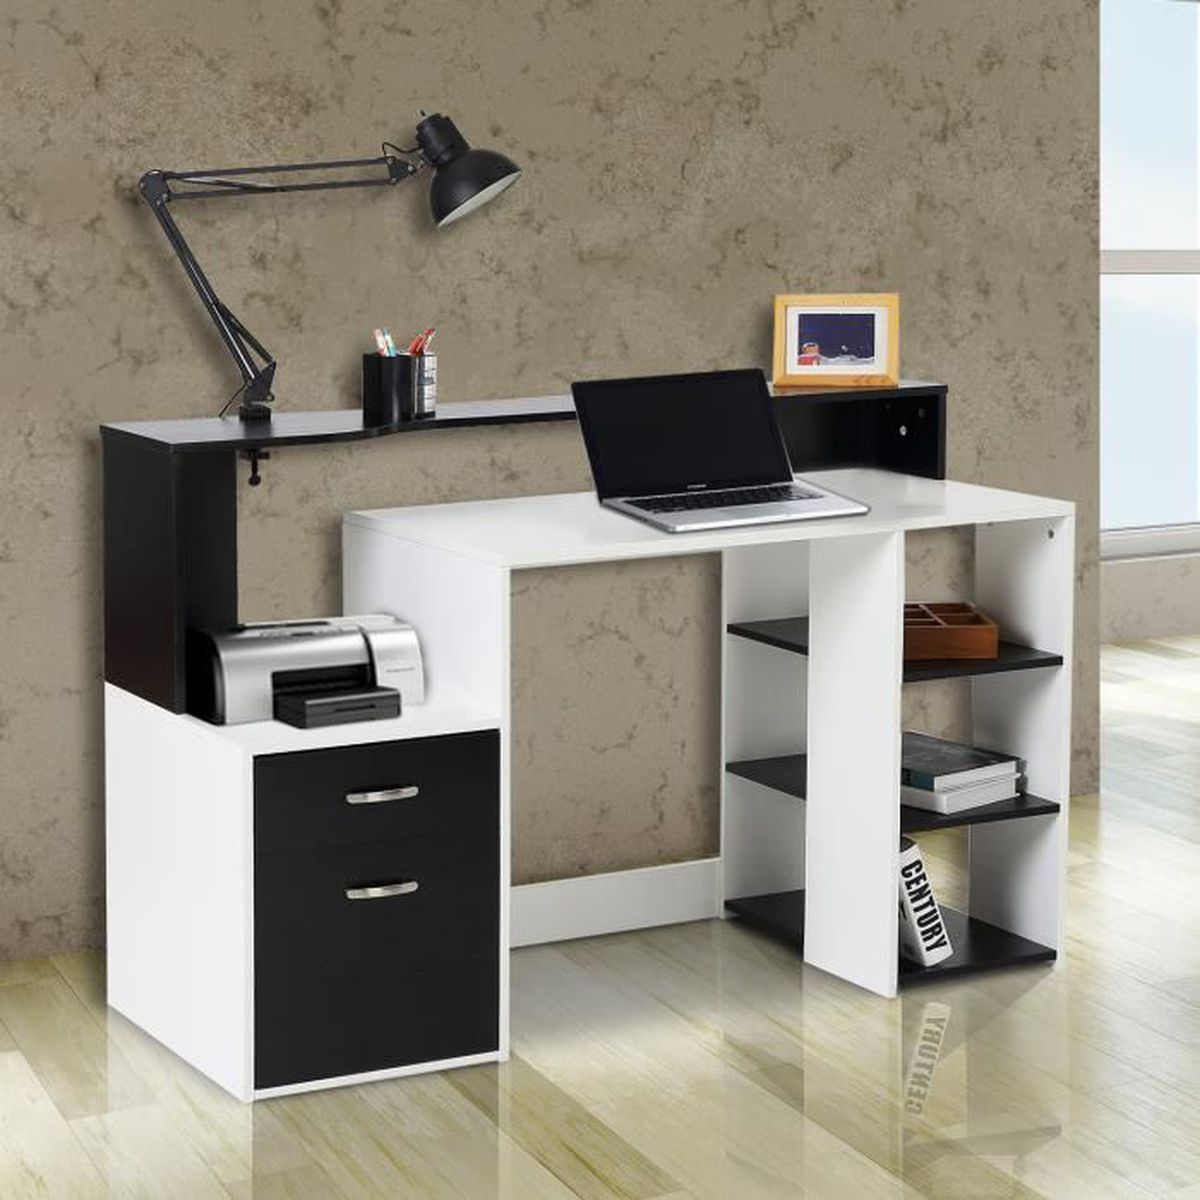 bureau multimedia blanc achat vente bureau multimedia blanc pas cher cdiscount. Black Bedroom Furniture Sets. Home Design Ideas